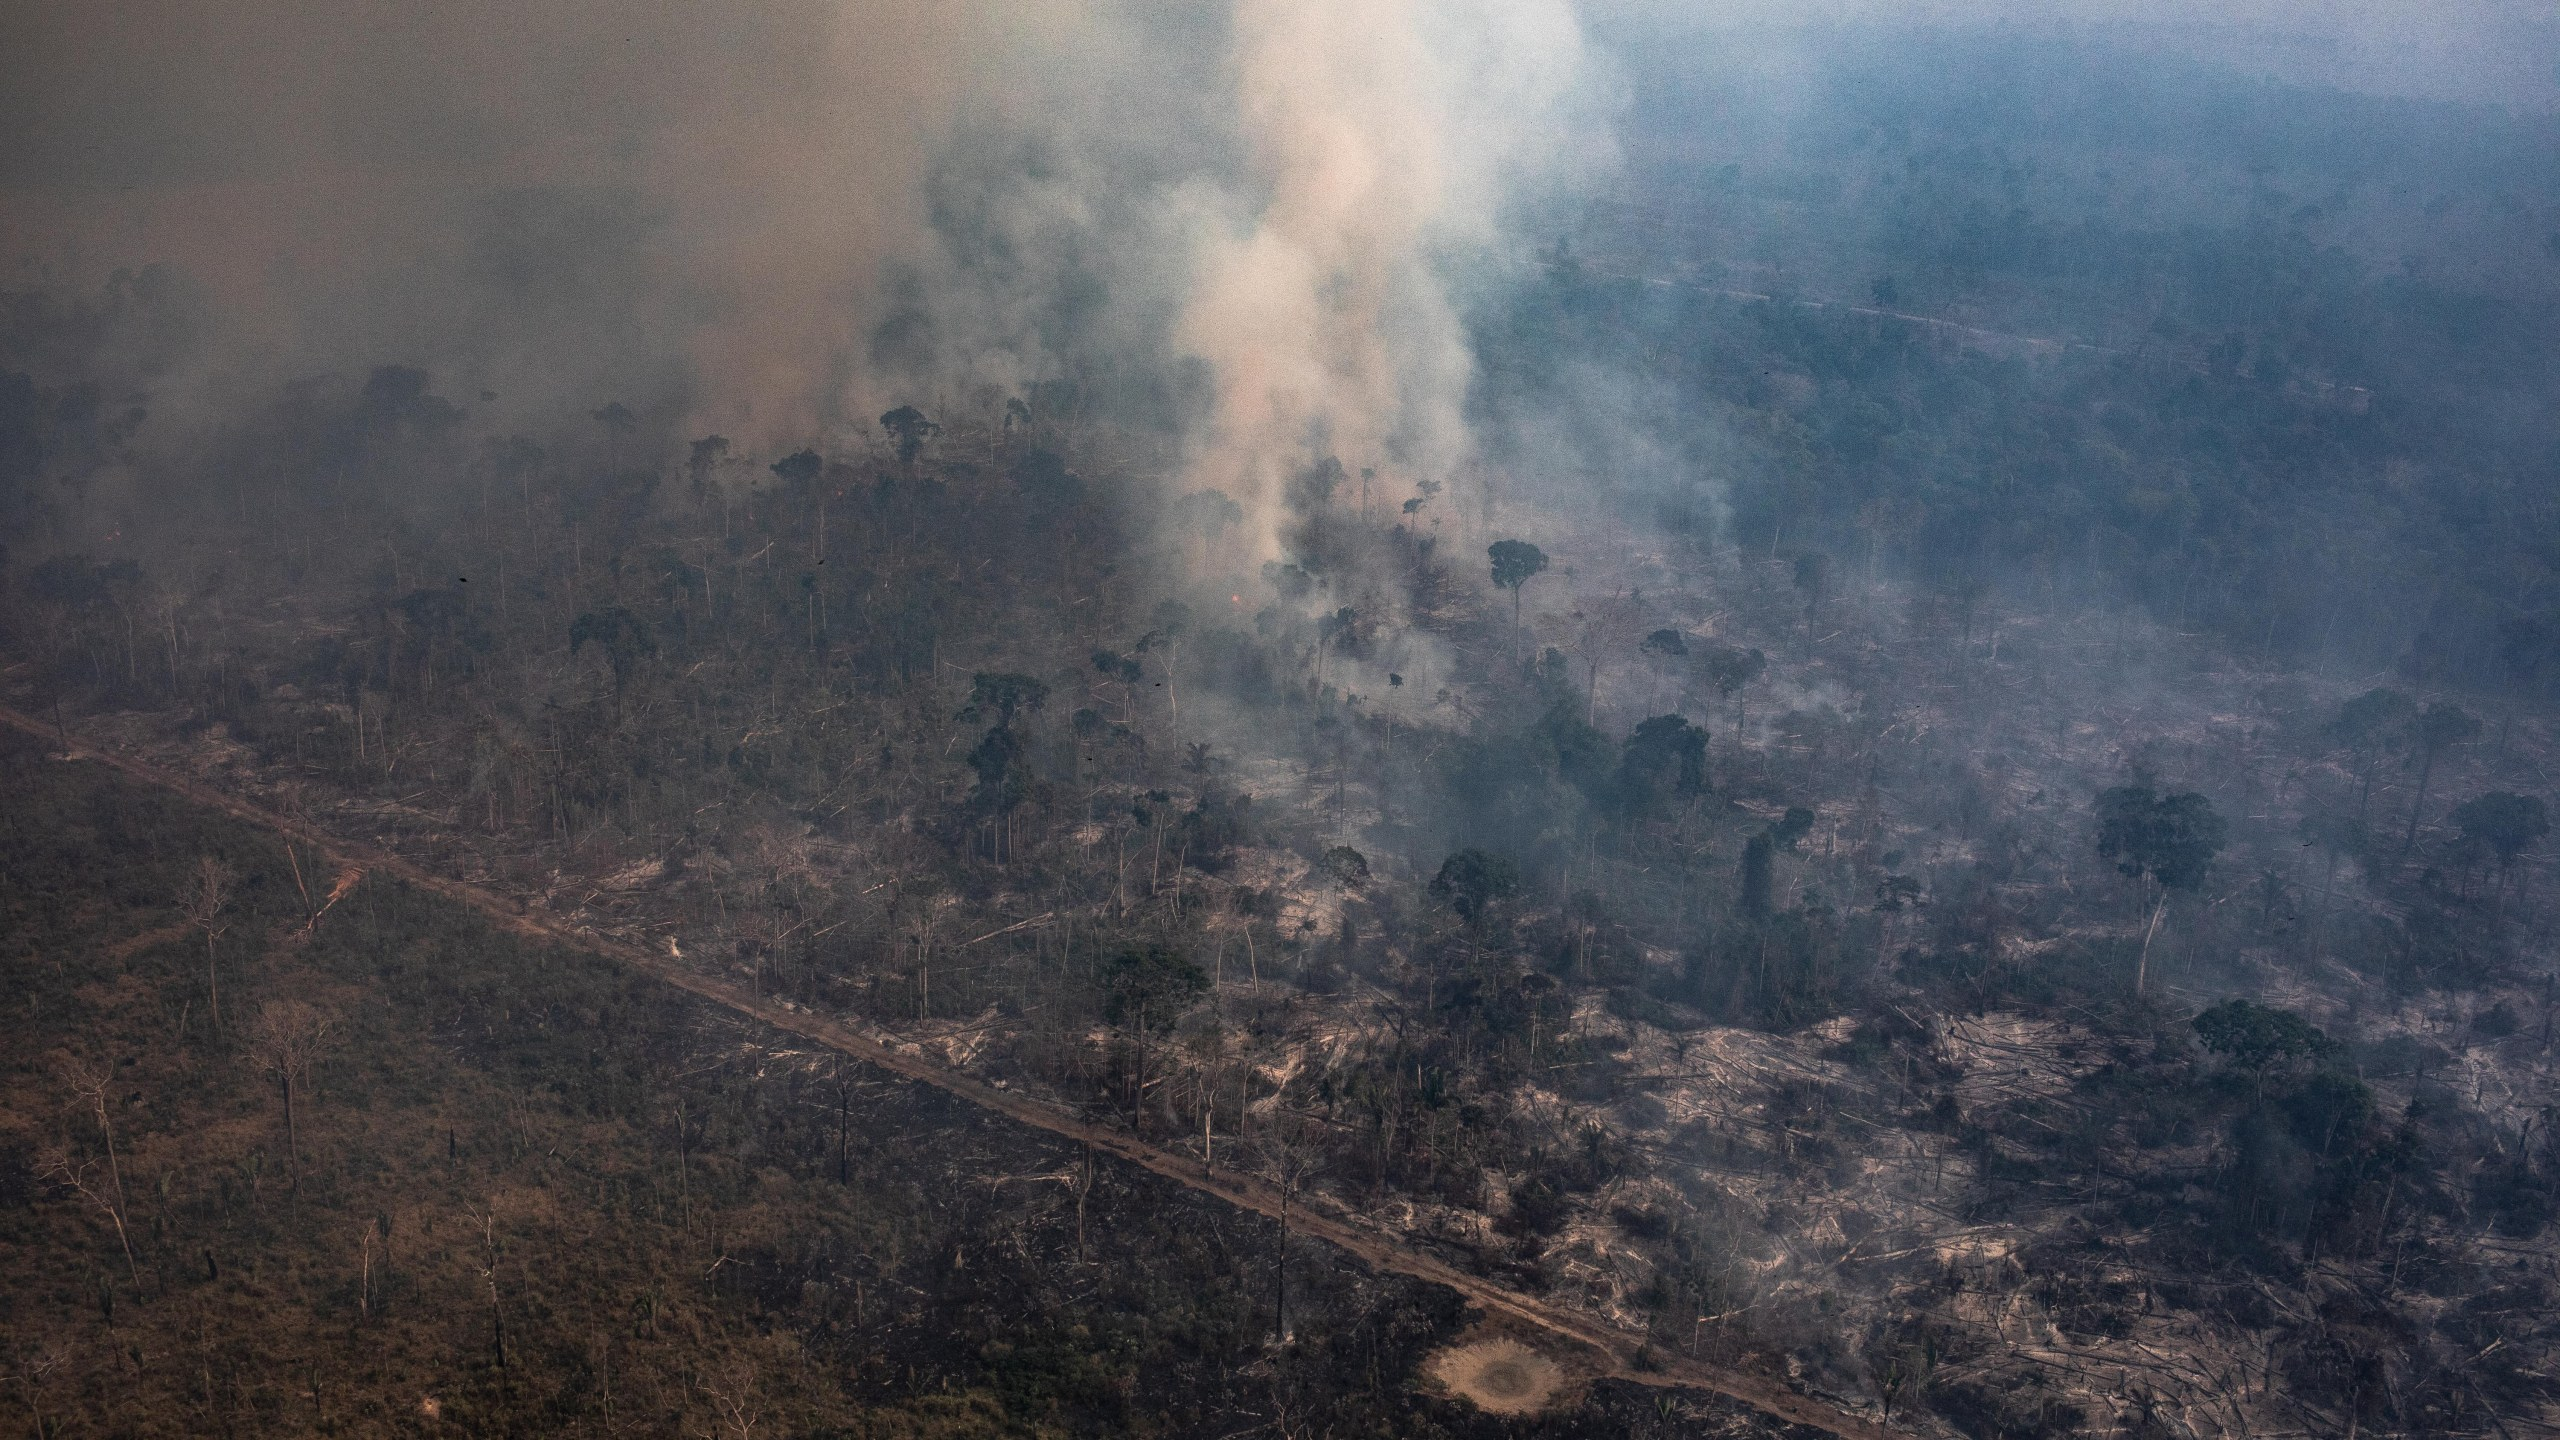 In this aerial image, a fire burns in a section of the Amazon rainforest on Aug. 25, 2019, in the Candeias do Jamari region near Porto Velho, Brazil. (Credit: Victor Moriyama/Getty Images)